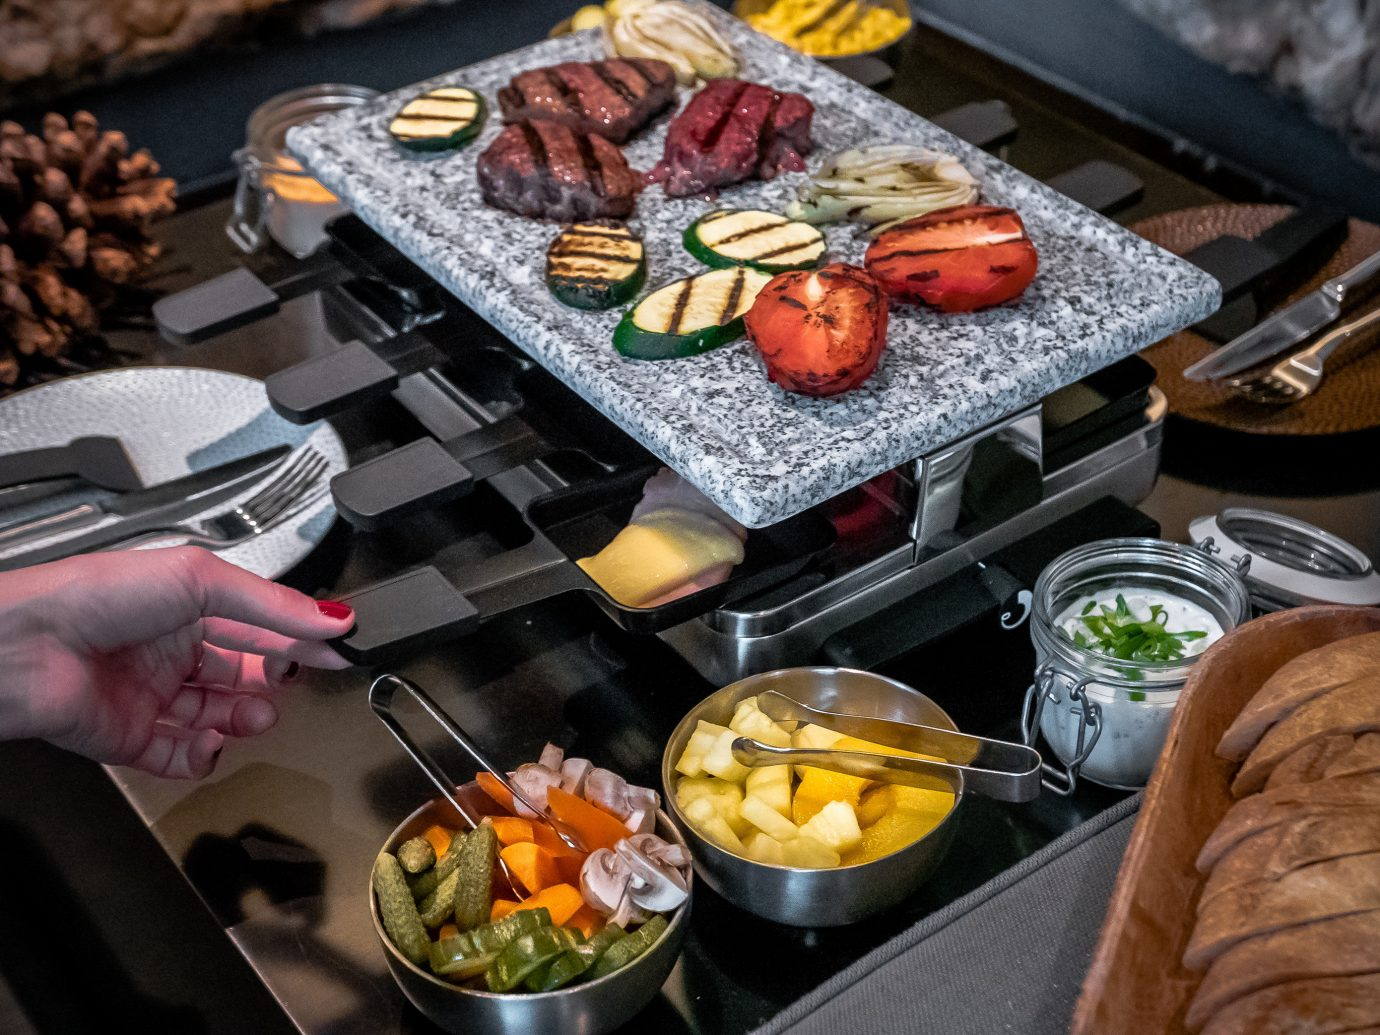 Food + Drink dish person meal indoor food grilling buffet cuisine meat barbecue brunch cooking sense lunch breakfast preparing